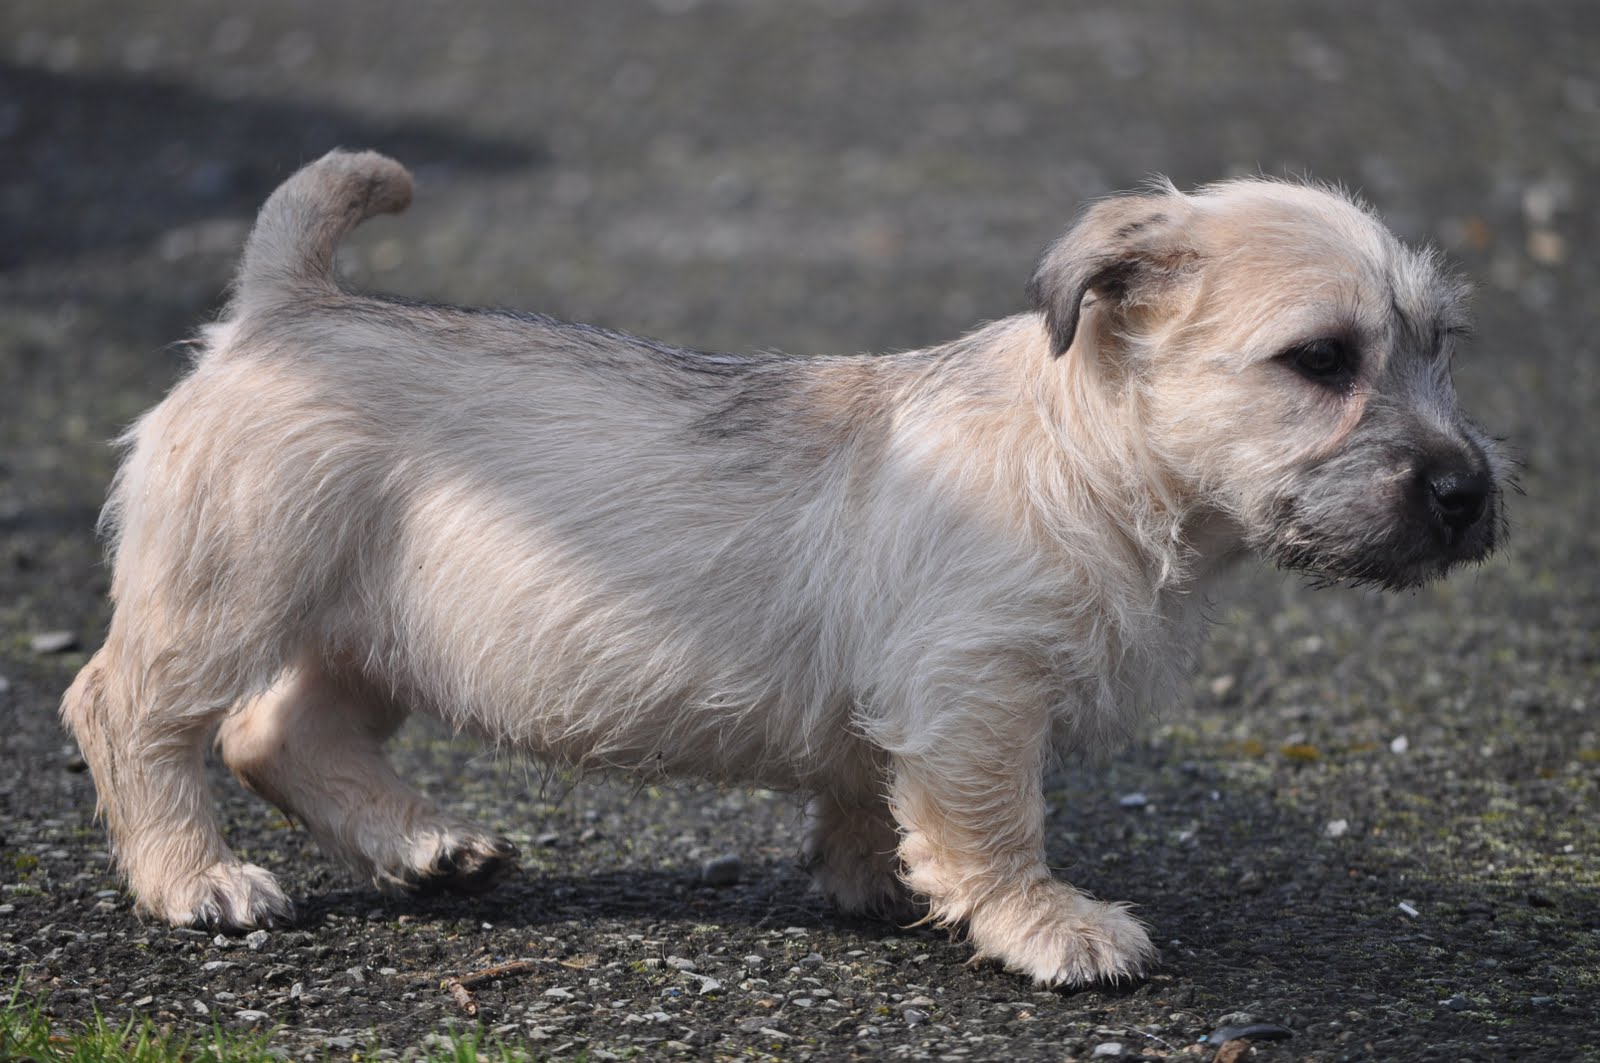 Glen of imaal terrier puppies rescue pictures information glen of imaal terrier altavistaventures Image collections